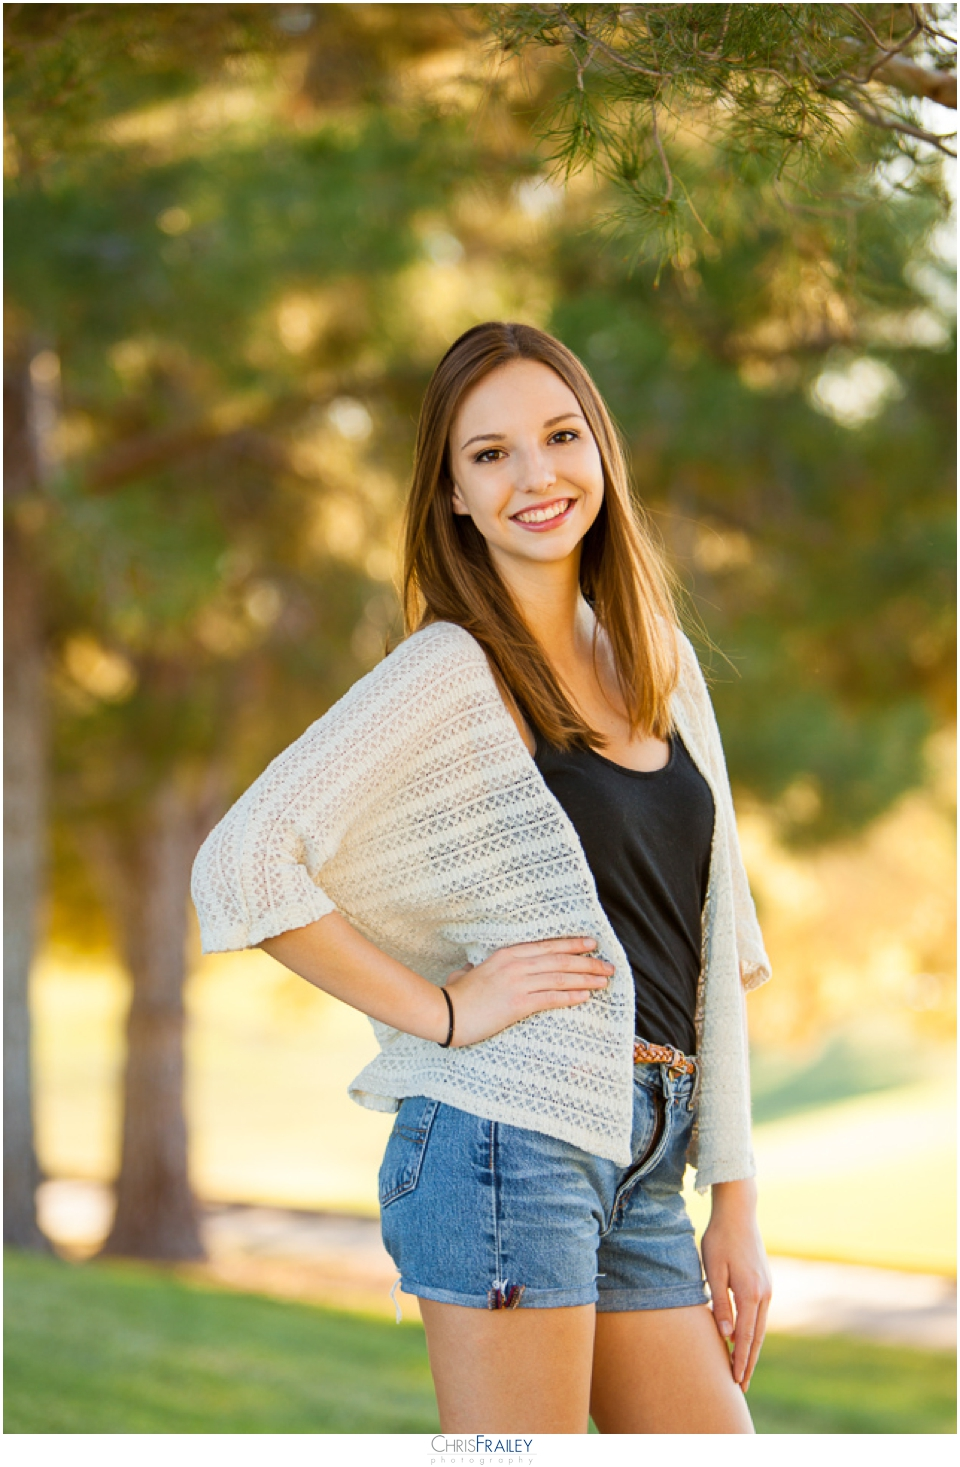 Pictures Of Outdoor Patios With Pavers: Outdoor Senior Portraits